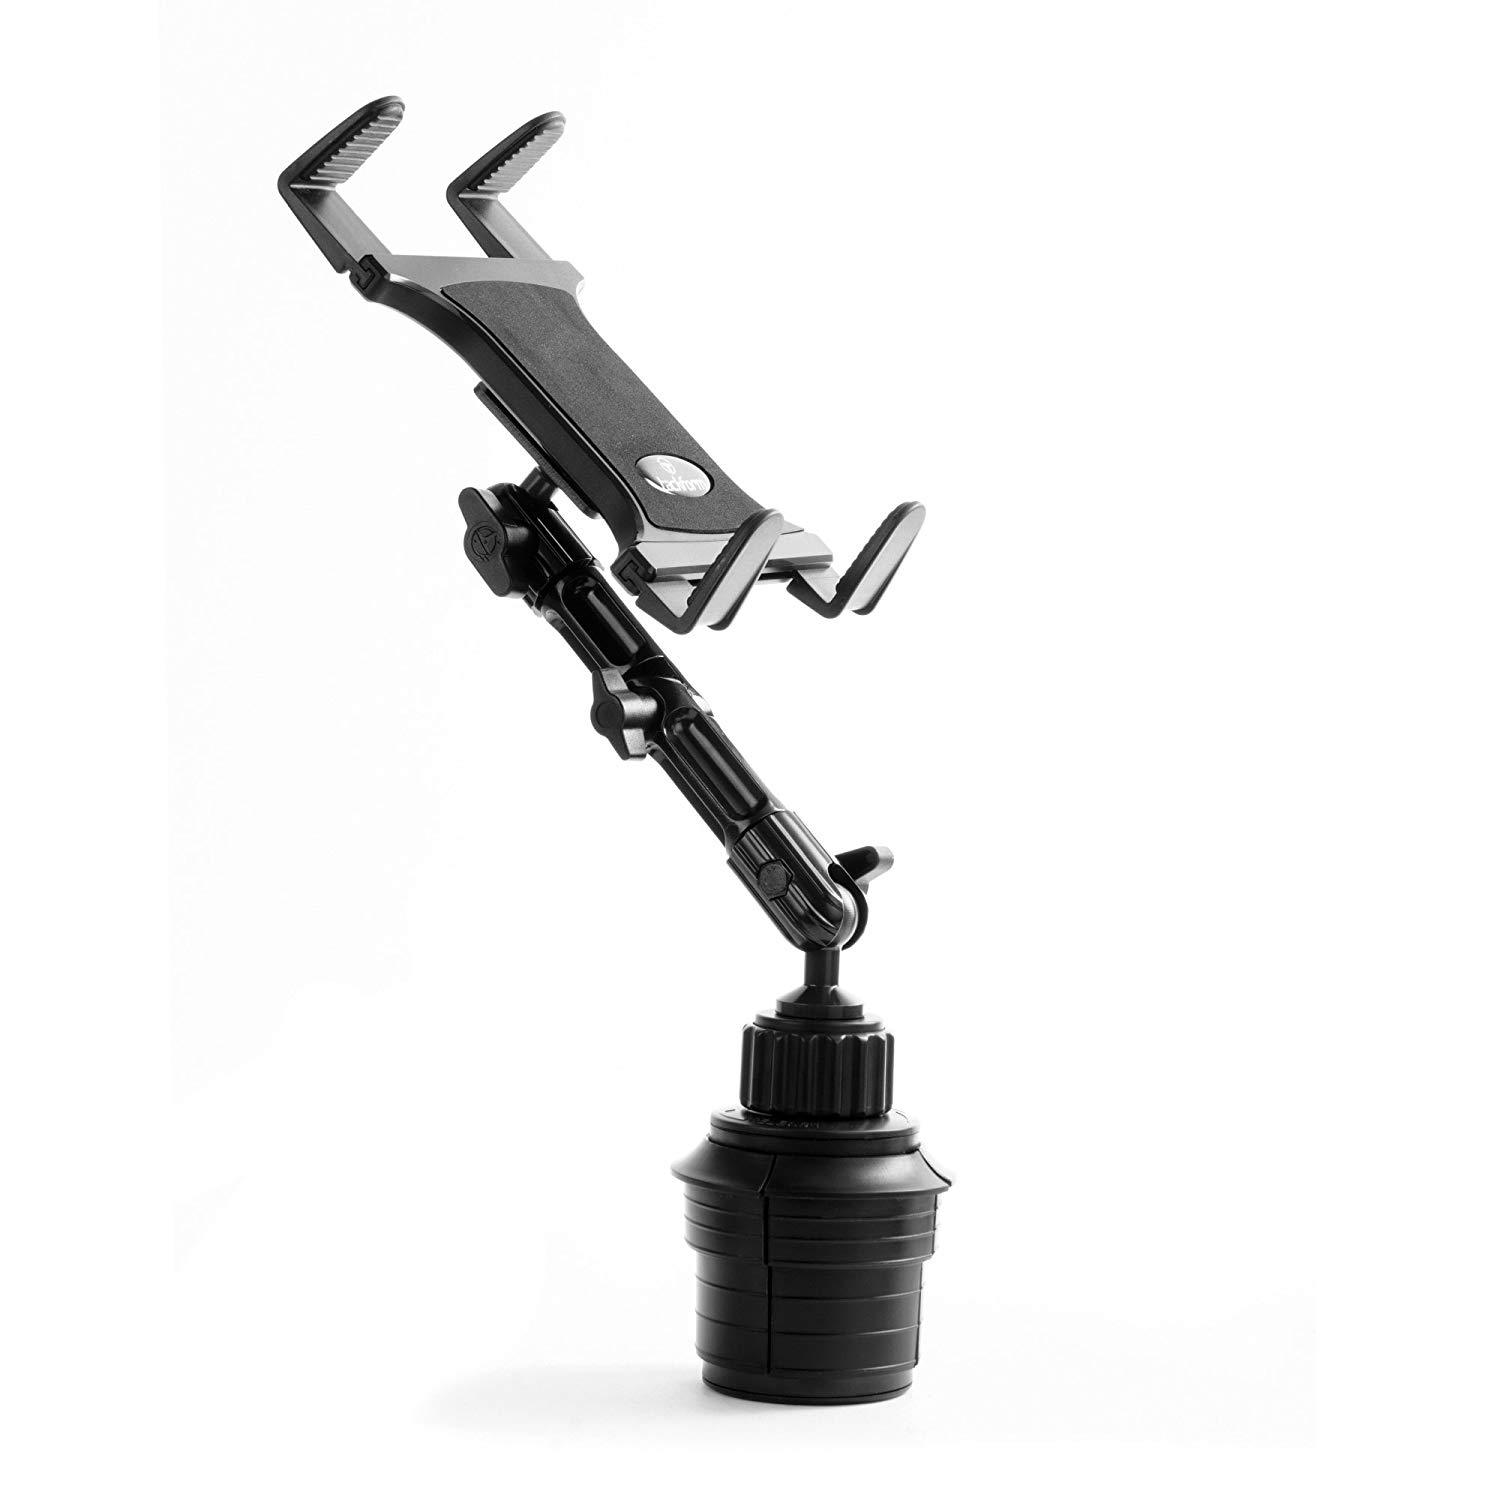 Cupholder base with all metal arm and spring loaded tablet cradle.